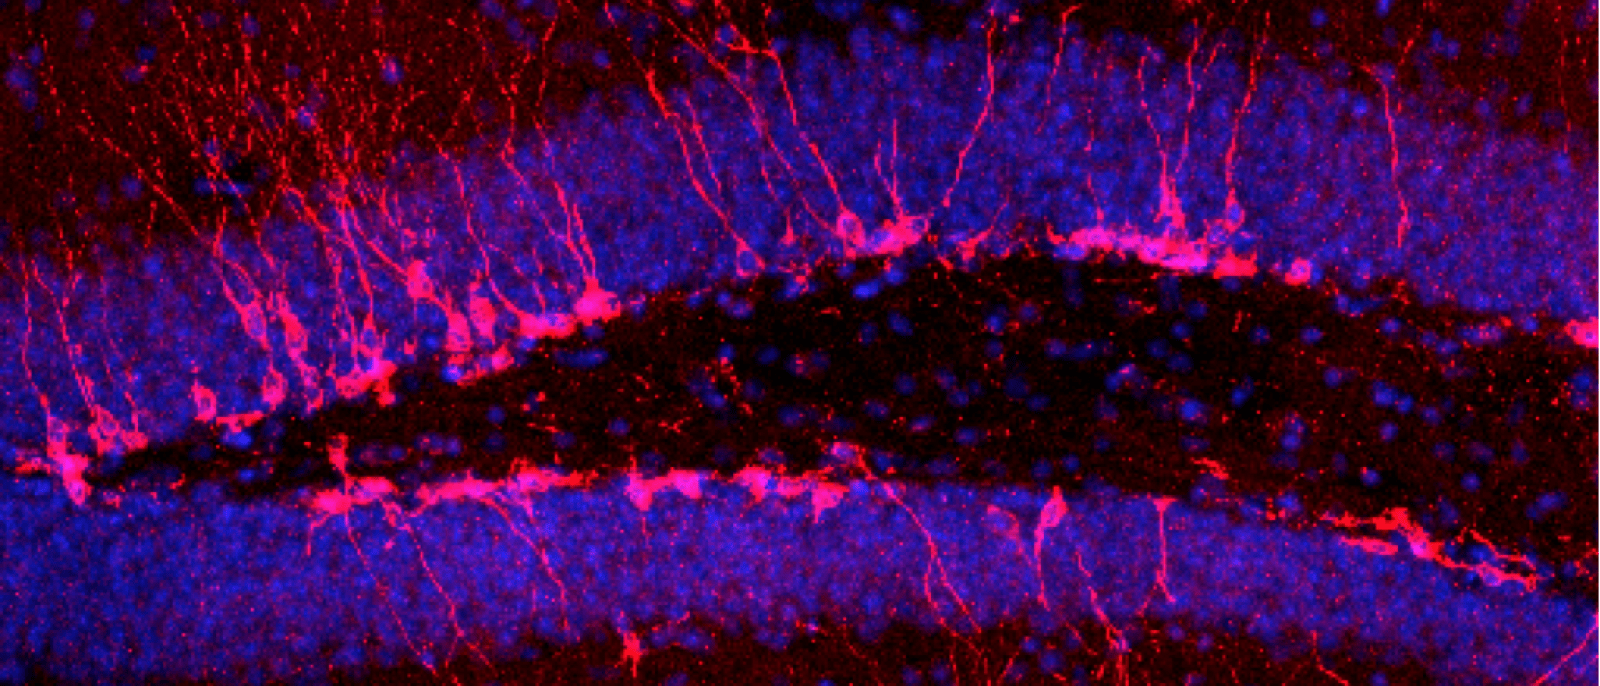 Though Few in Number, Young Neurons Have Big Impact